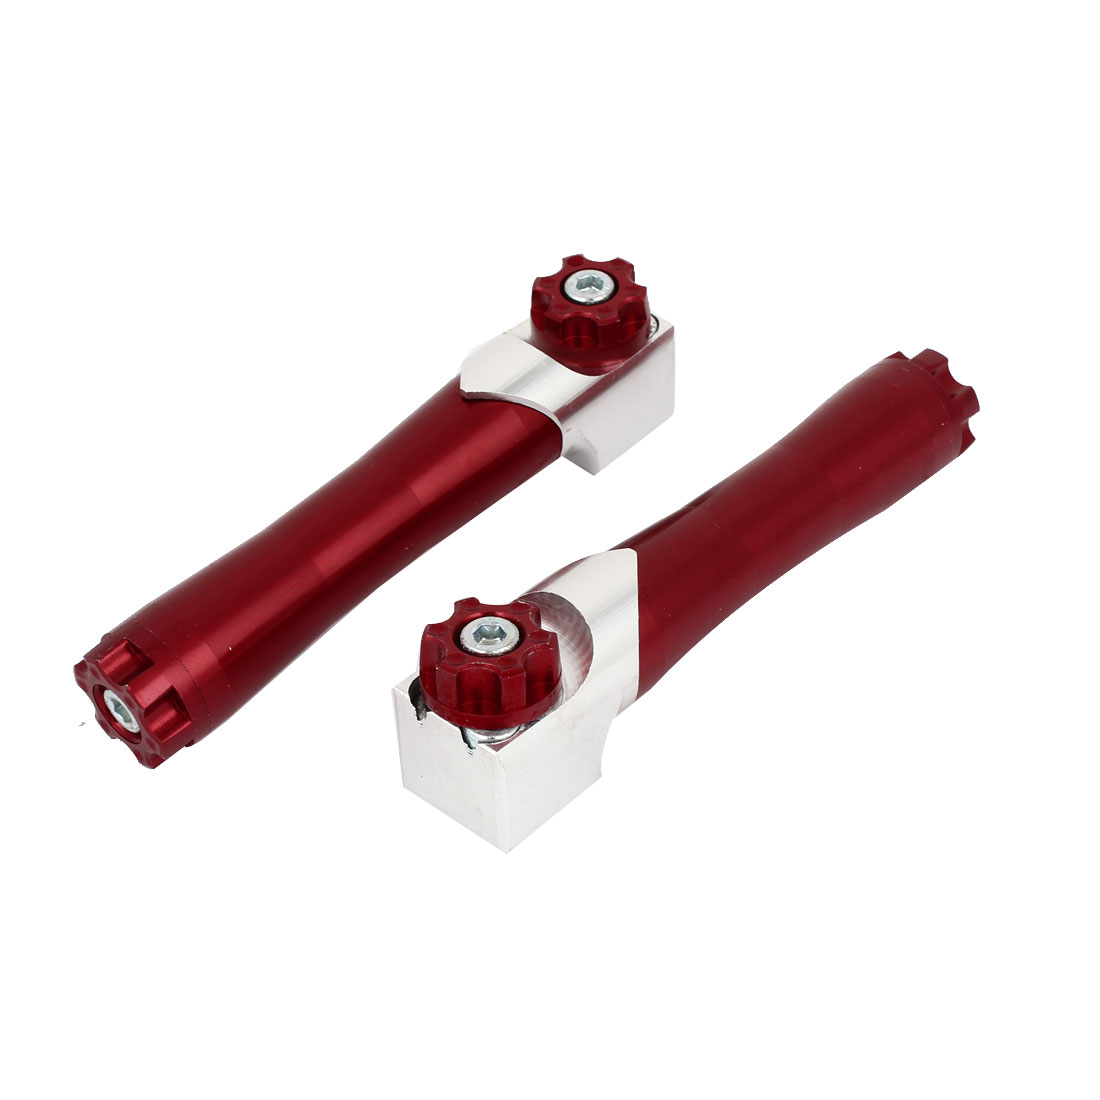 2 Pcs Front Shock Absorber Cylinders Decorative Bottles Red 14cm Length